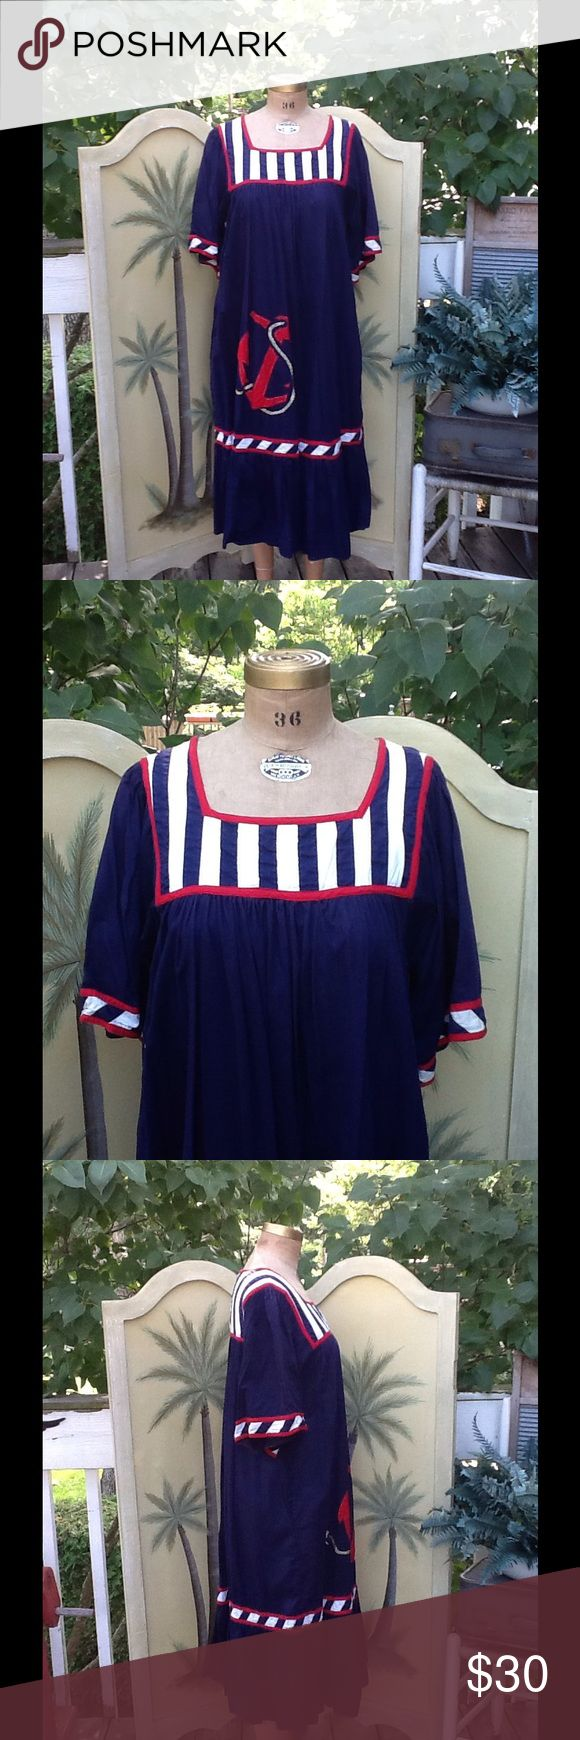 """Vtg Hippie Nautical Festival Tent Style Dress How cute is this dress? It's a VTG hippie nautical theme festival tent dress...its in a navy blue with red & white trim features an anchor on the bottom right side, ruffled hem side seam pockets...perfect cruise dress/coverup for sitting by the pool or just strolling through the islands,it's a Sz S made in INDIA 100% Cotton,in excellent condition! Measurements: L:46"""", B:21 3/4"""" double, Sh:15"""", SL/13"""", W: free Vintage Dresses Maxi"""